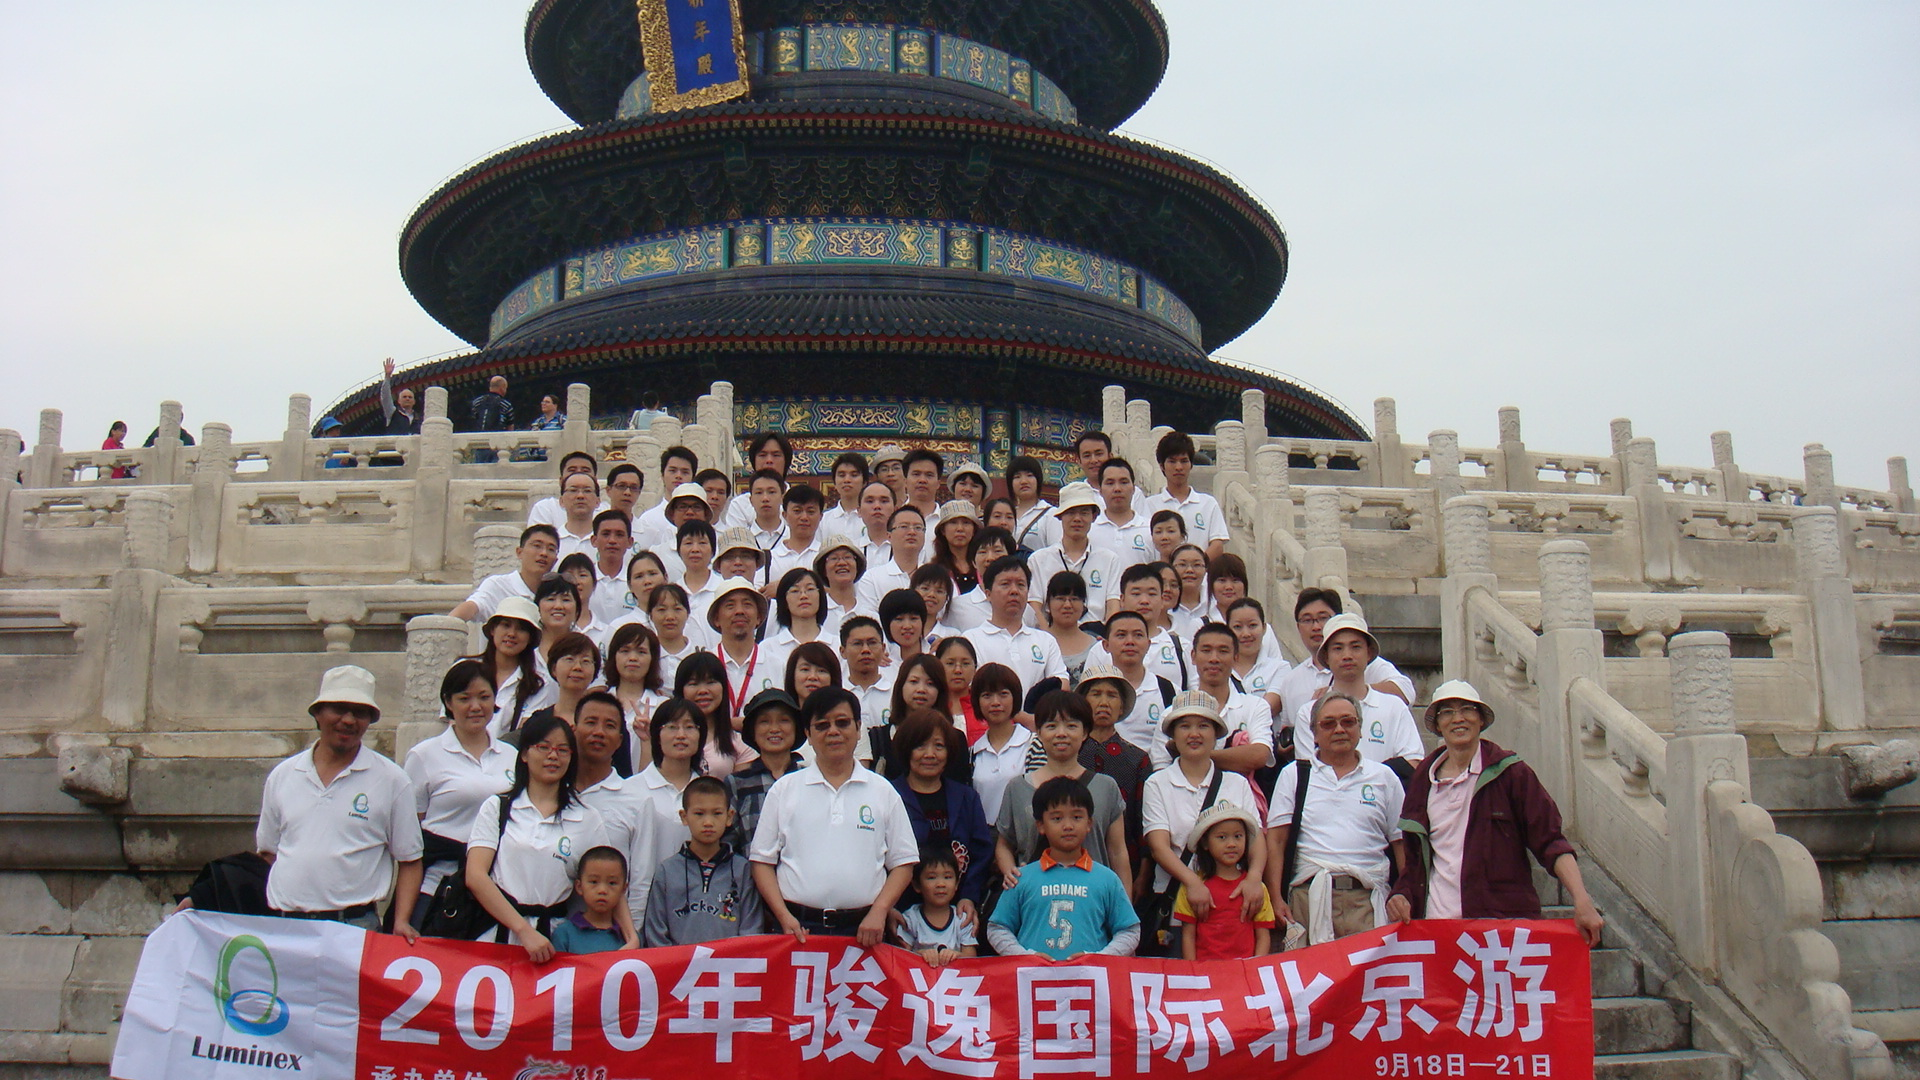 2010 Temple of Heaven